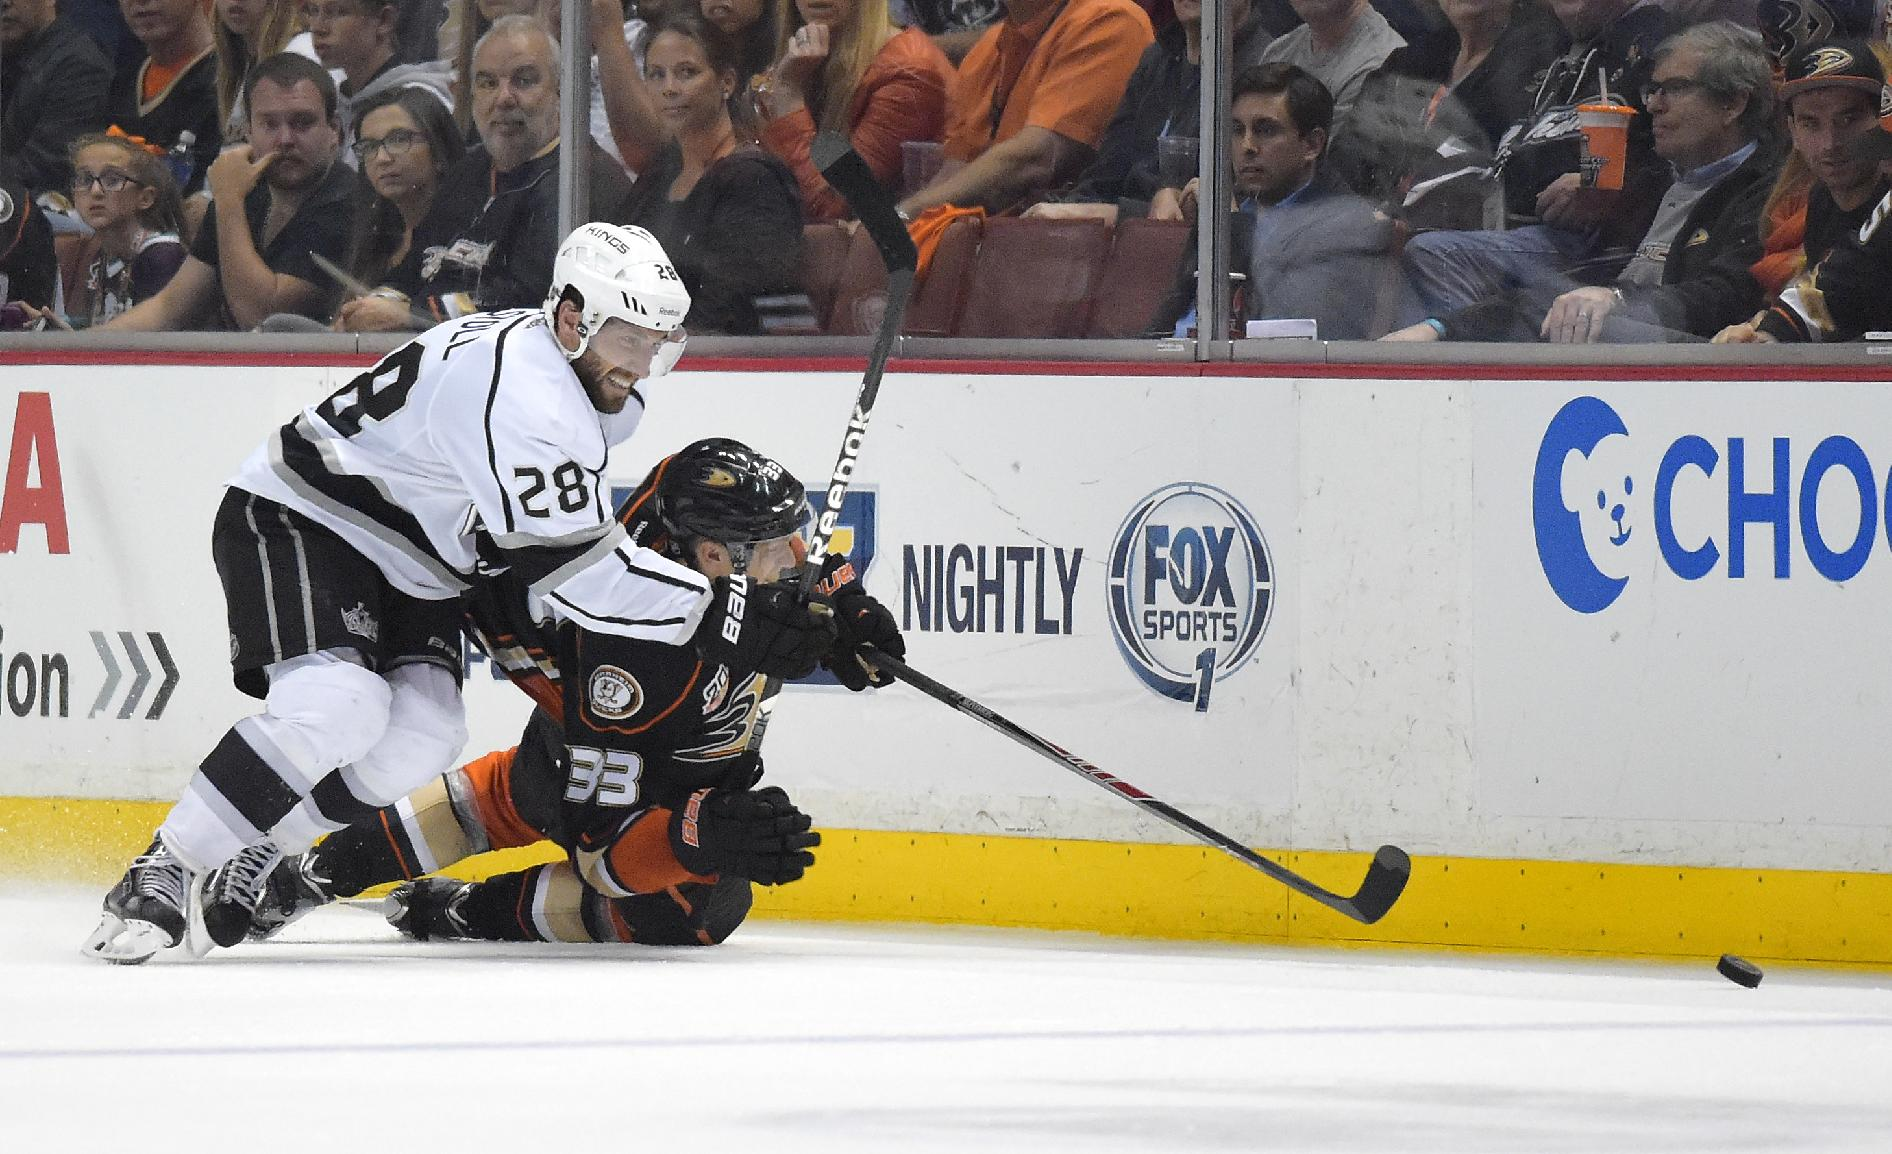 Los Angeles Kings center Jarret Stoll, left, and Anaheim Ducks left wing Jakob Silfverberg, of Sweden, battle for the puck during the third period in Game 2 of an NHL hockey second-round Stanley Cup playoff series, Monday, May 5, 2014, in Anaheim, Calif. The Kings won 3-1